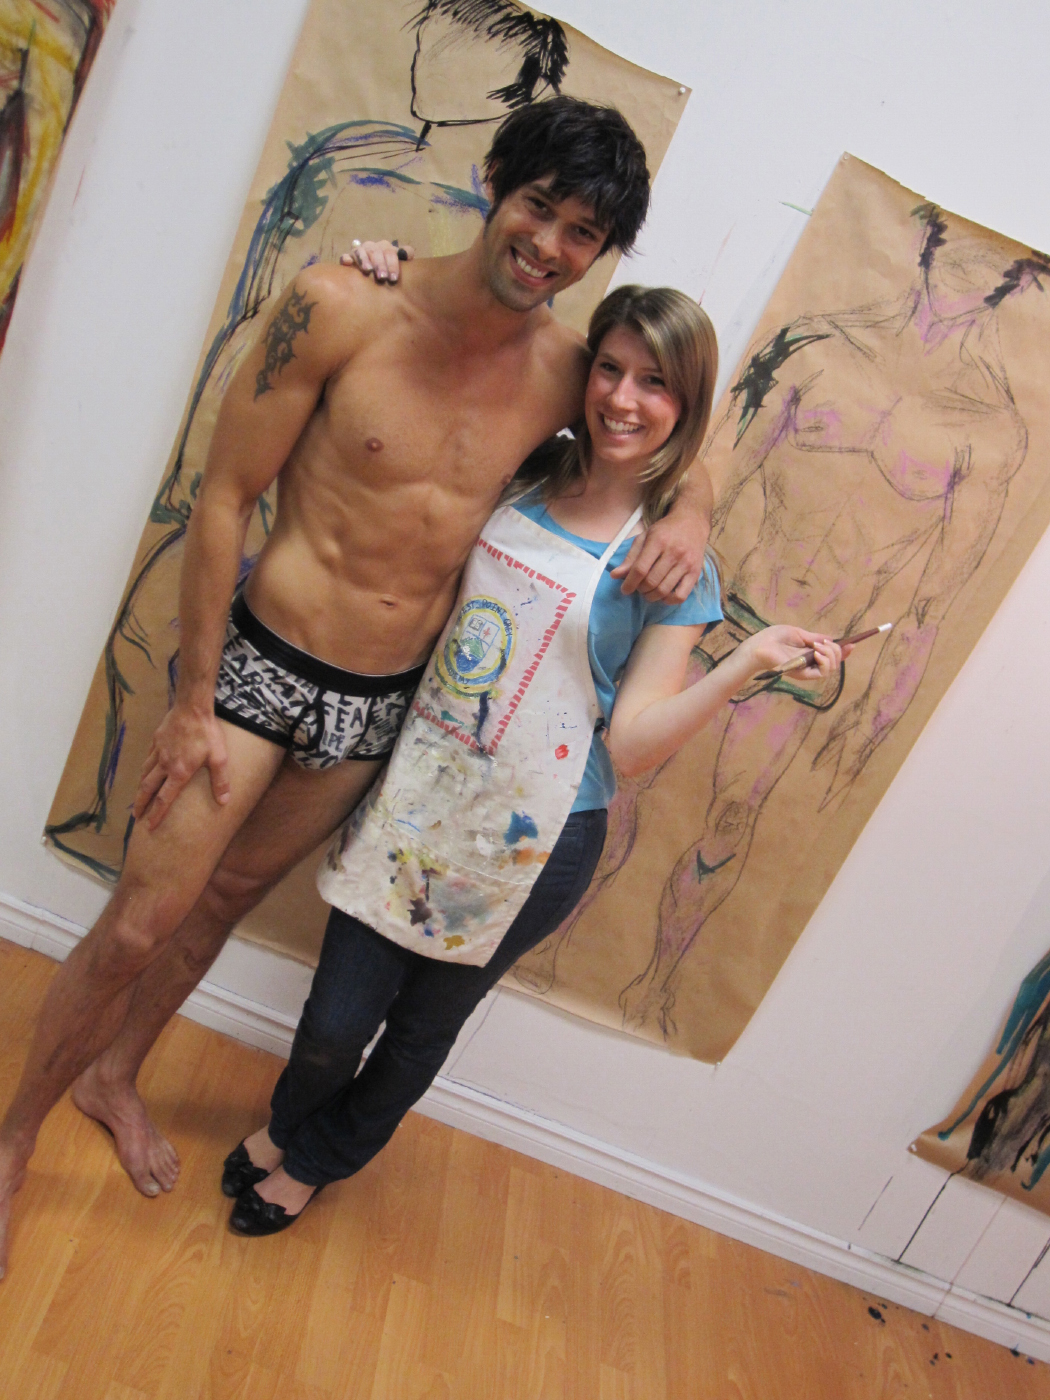 Drawn to Men Art Parties #2